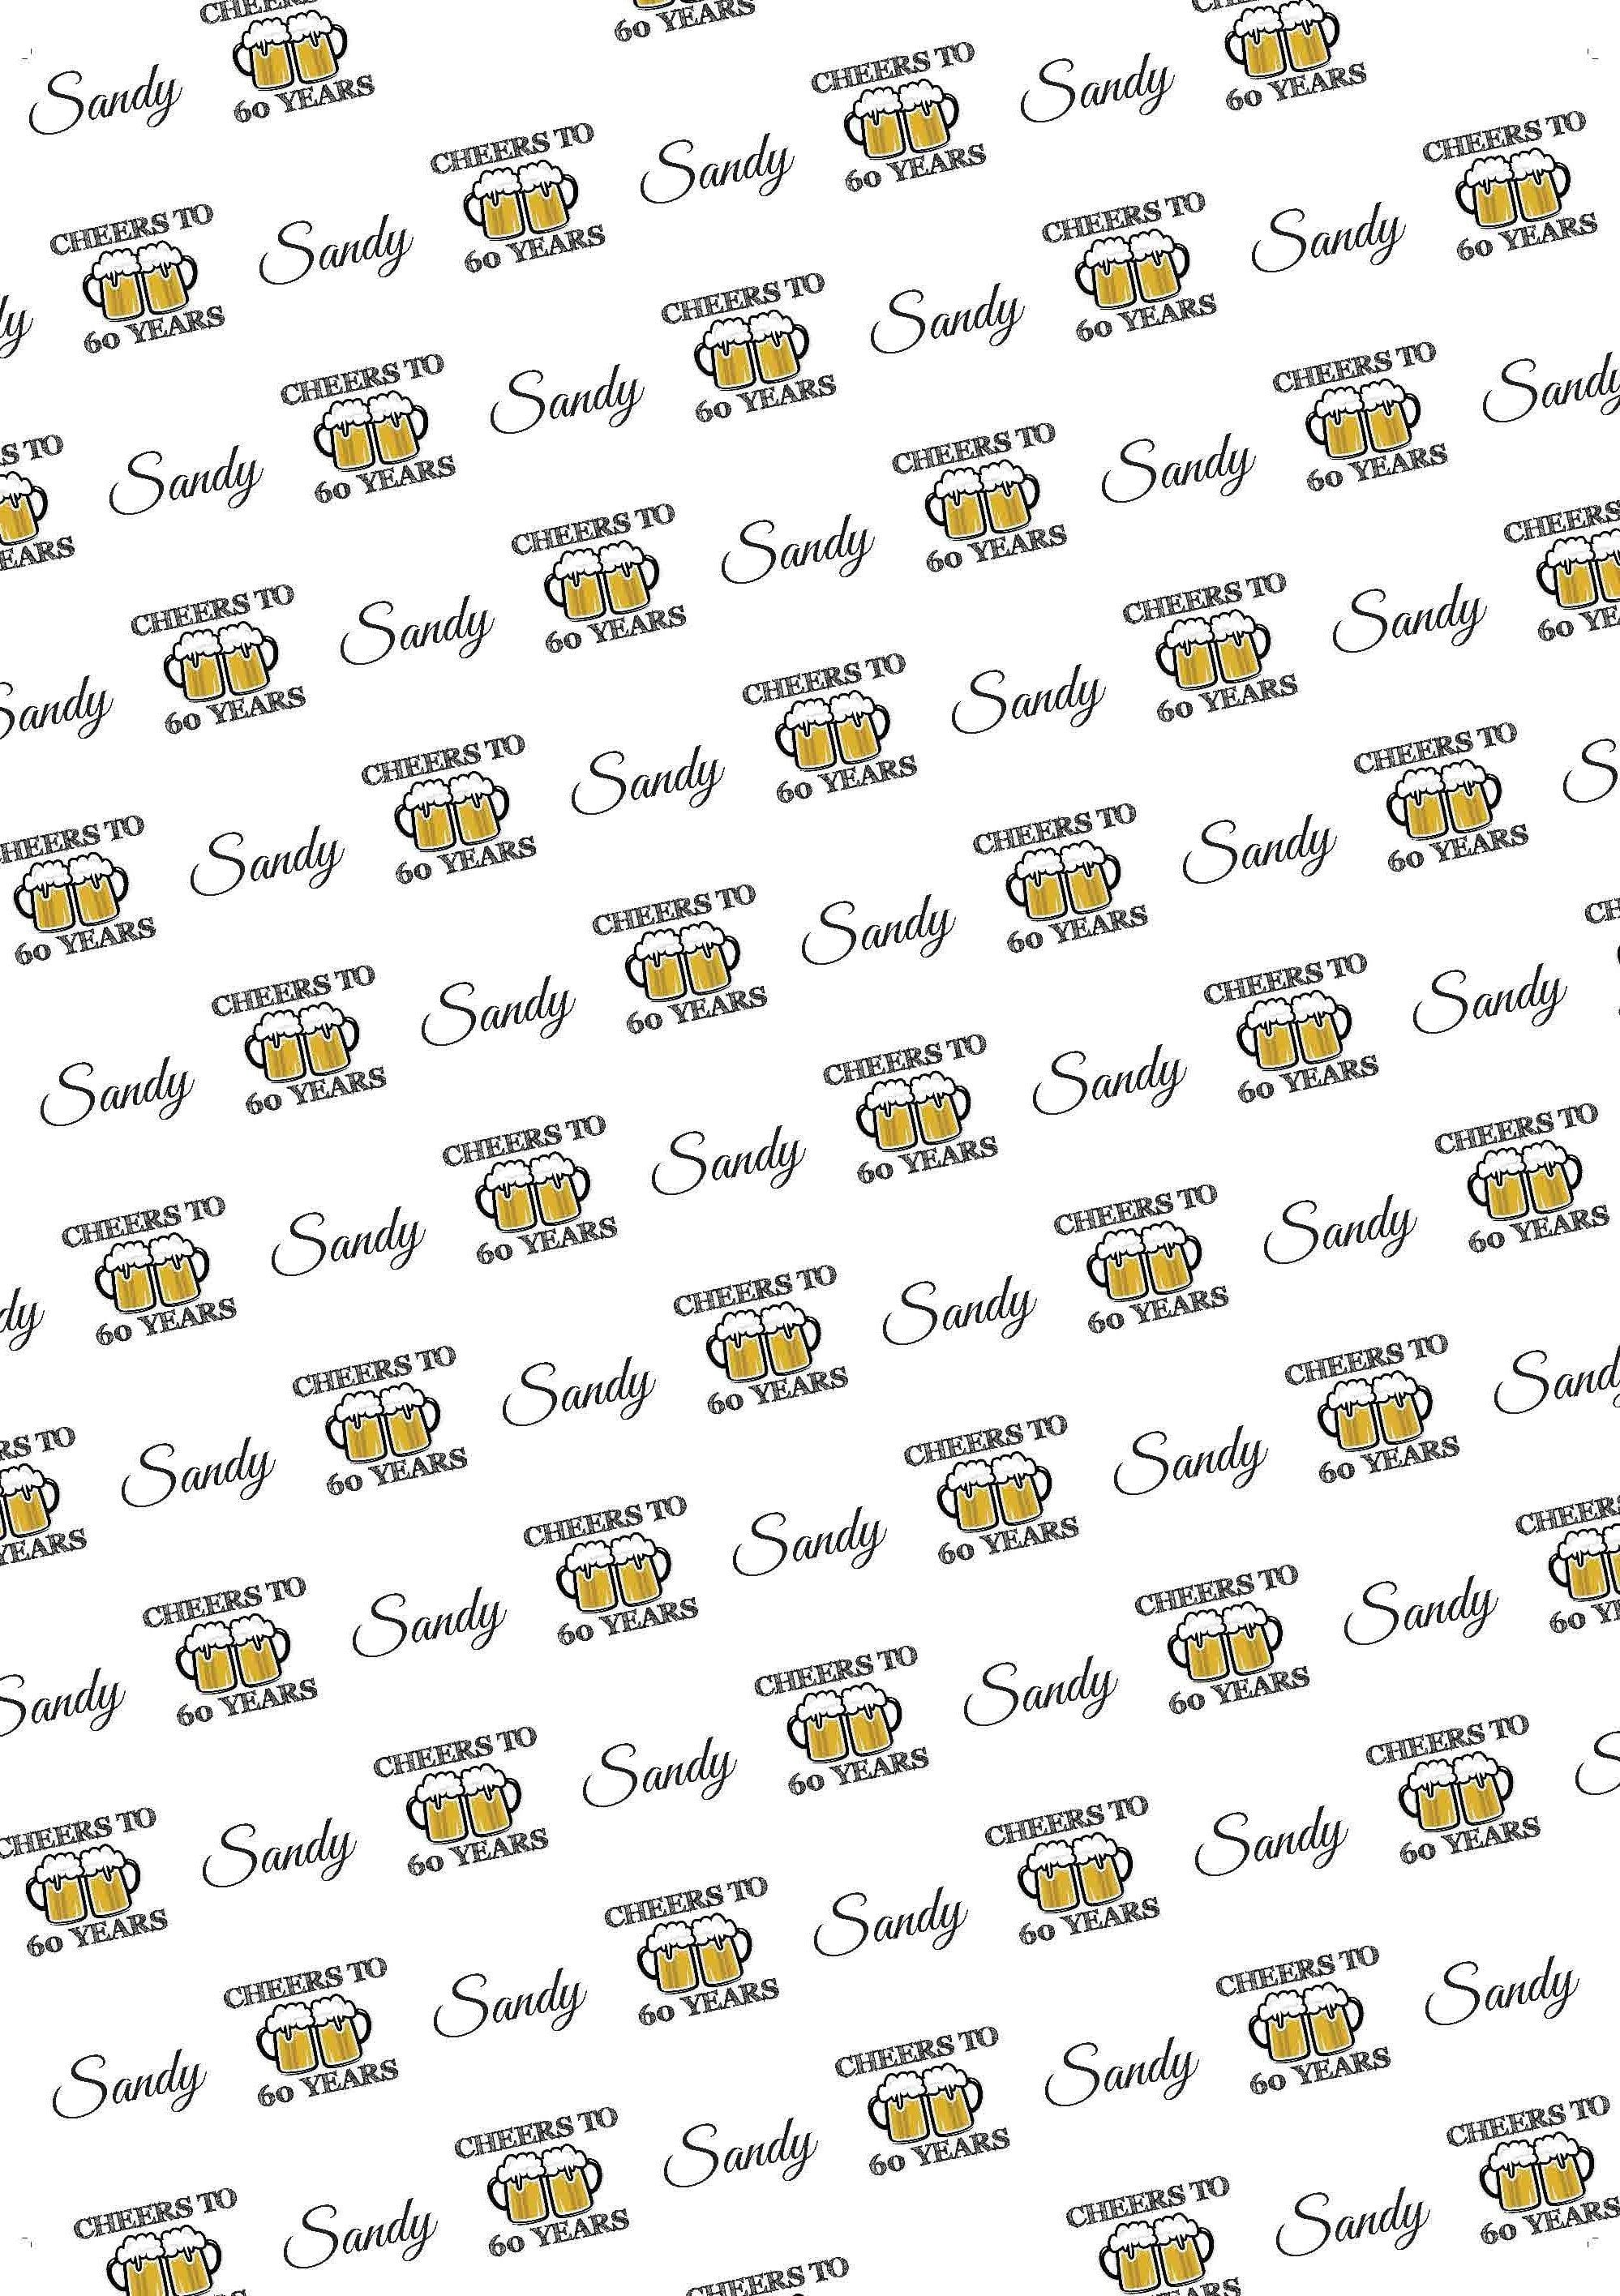 60th Birthday Cheers Personalized Birthday Gift Wrap - Potter's Printing